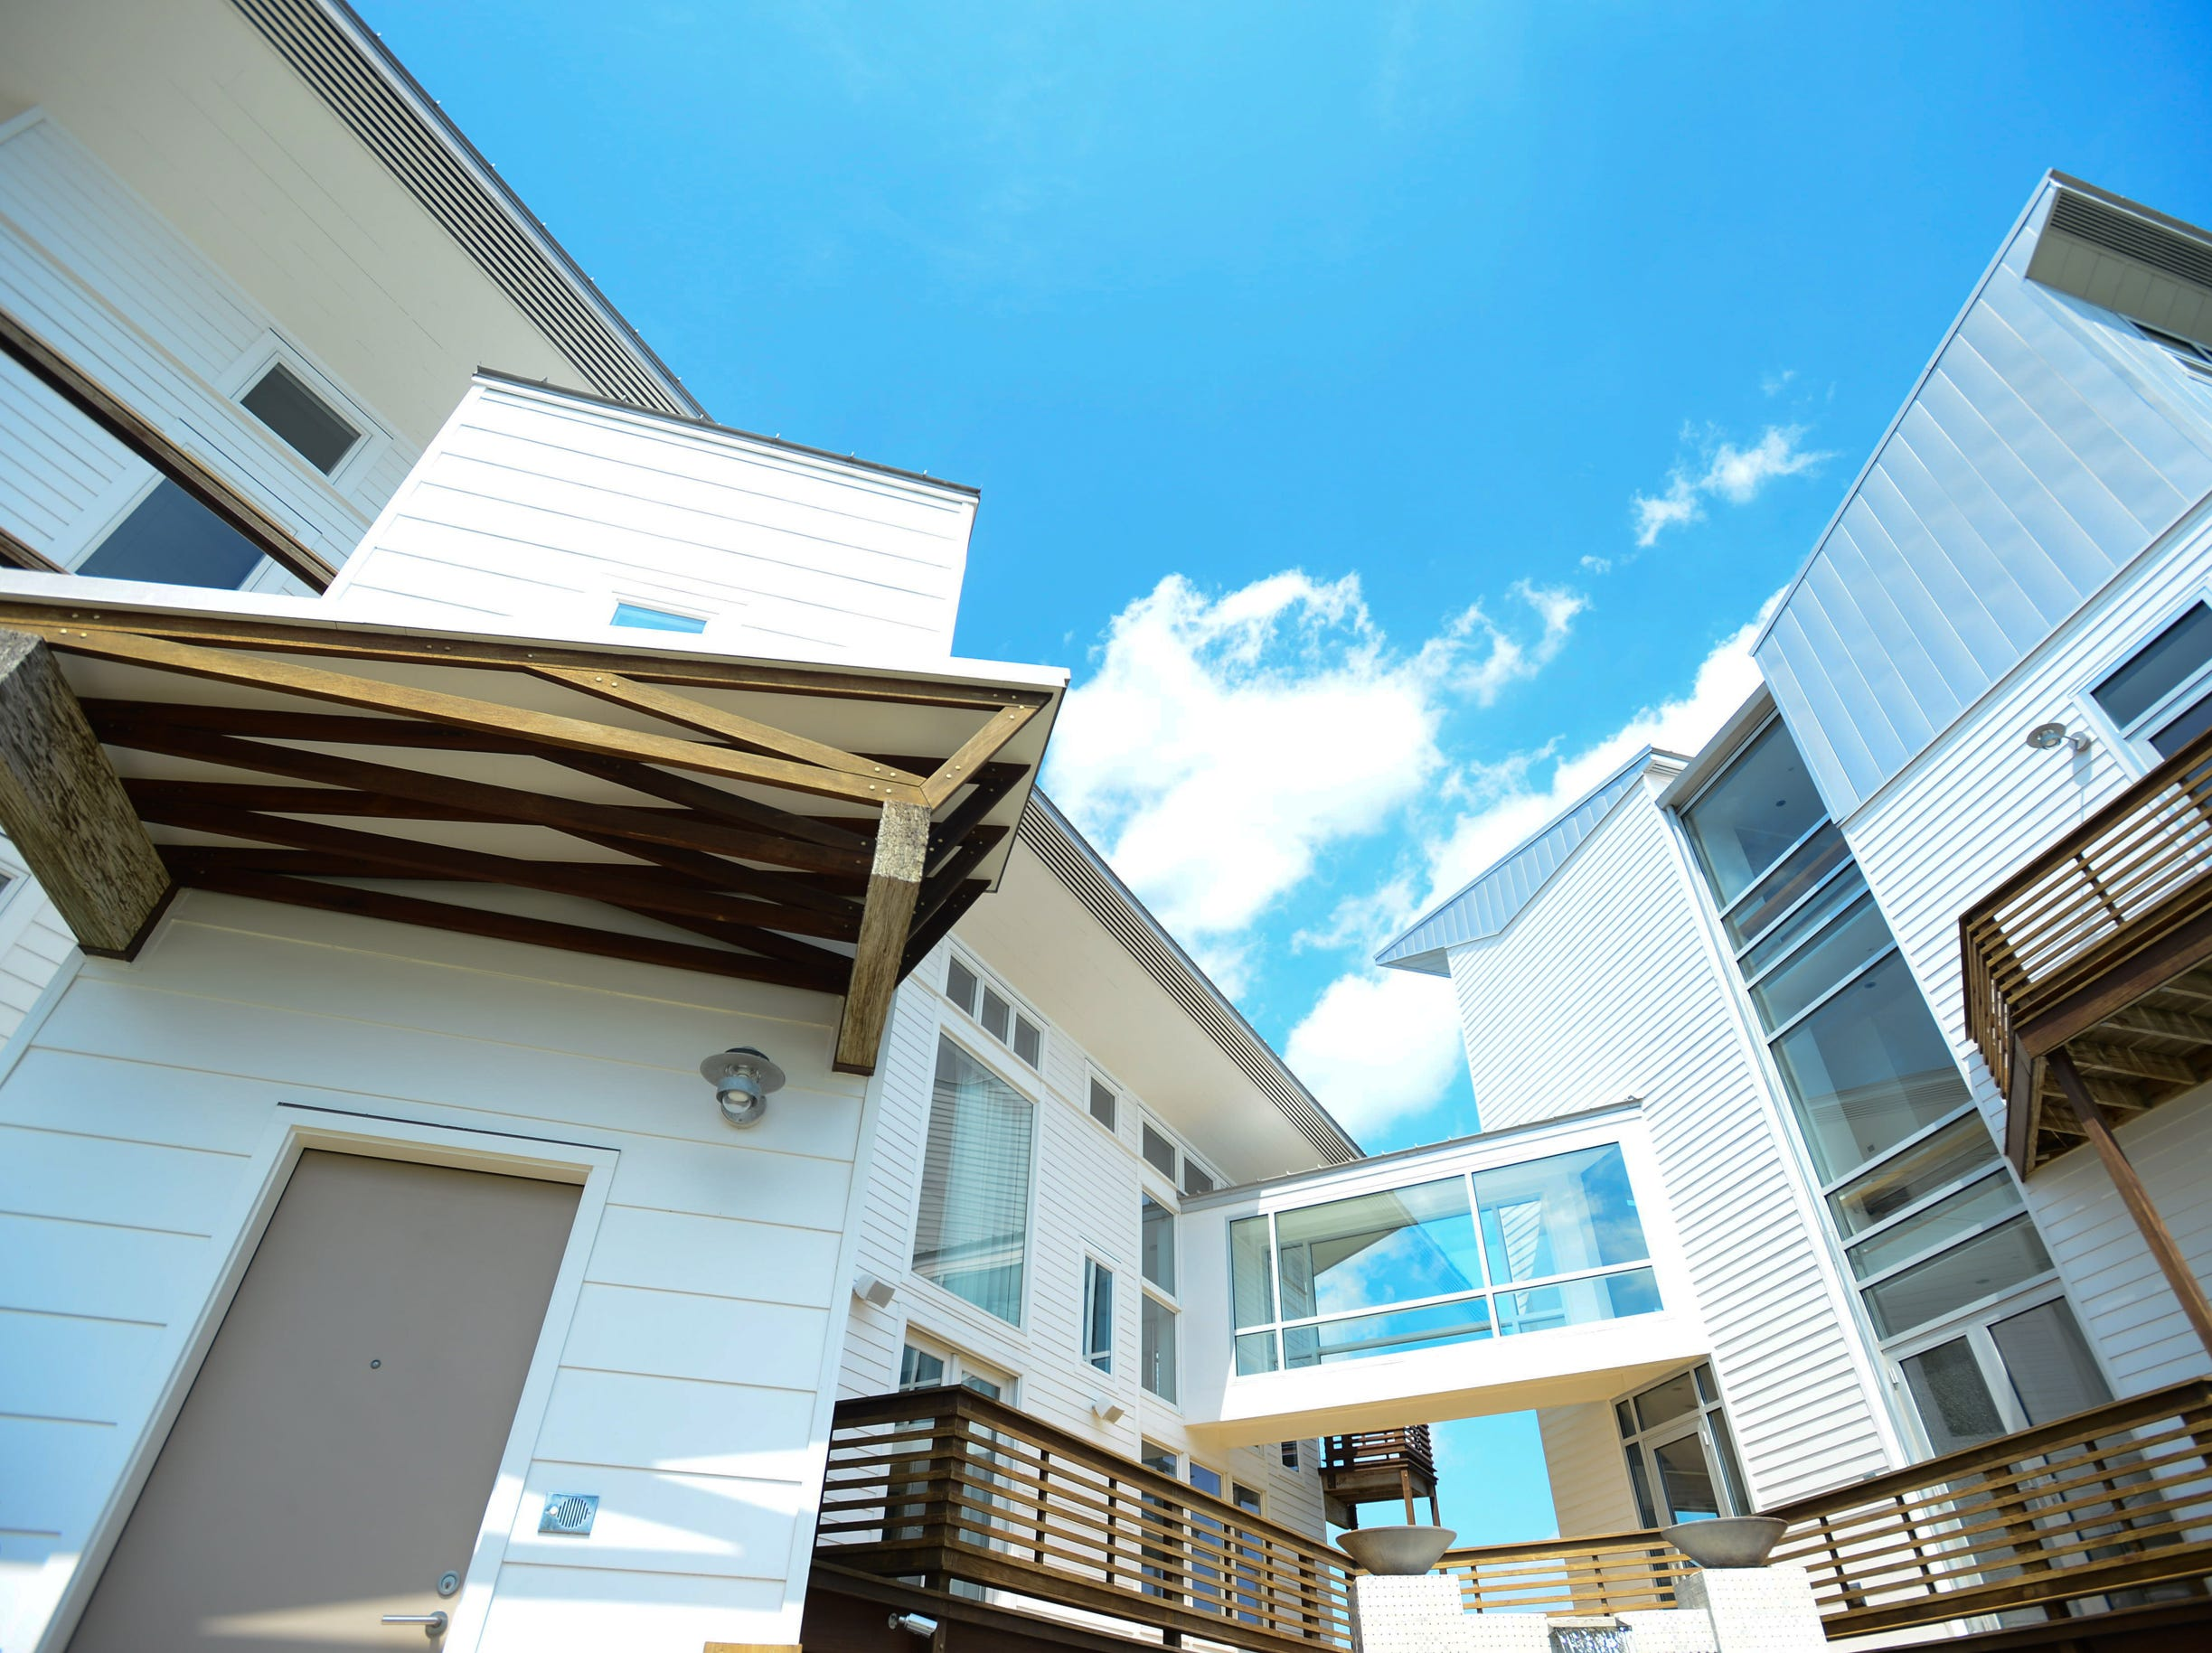 Ready to buy your beach luxury vacation get away? Here is your chance. 12933 Old Bridge Rd, in Ocean City is up for auction. Consisting of 5 bedrooms and 5 baths. A total of 5,003 sqft an Absolute Auction/No Reserve to be held on-site, September 10th, 2016, at 11:00AM. Elite Auctions will be hosting the open houses and auction.